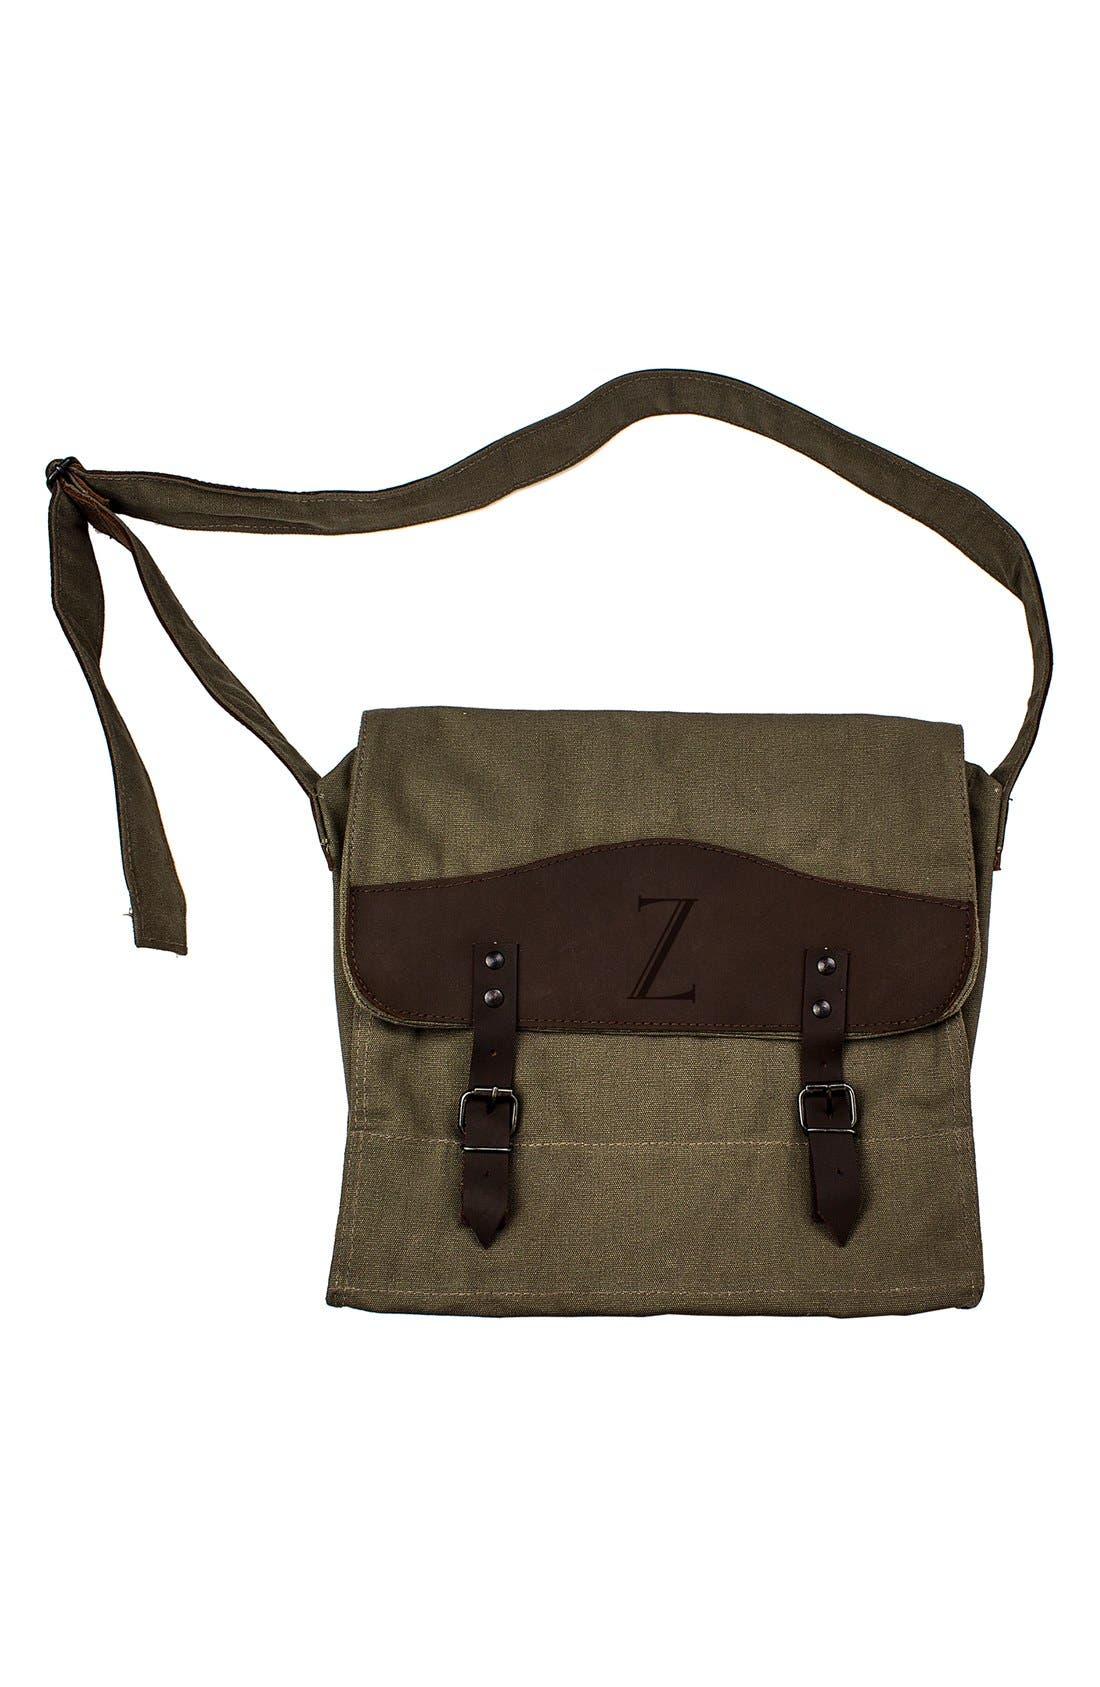 Alternate Image 1 Selected - Cathy's Concepts Monogram Messenger Bag